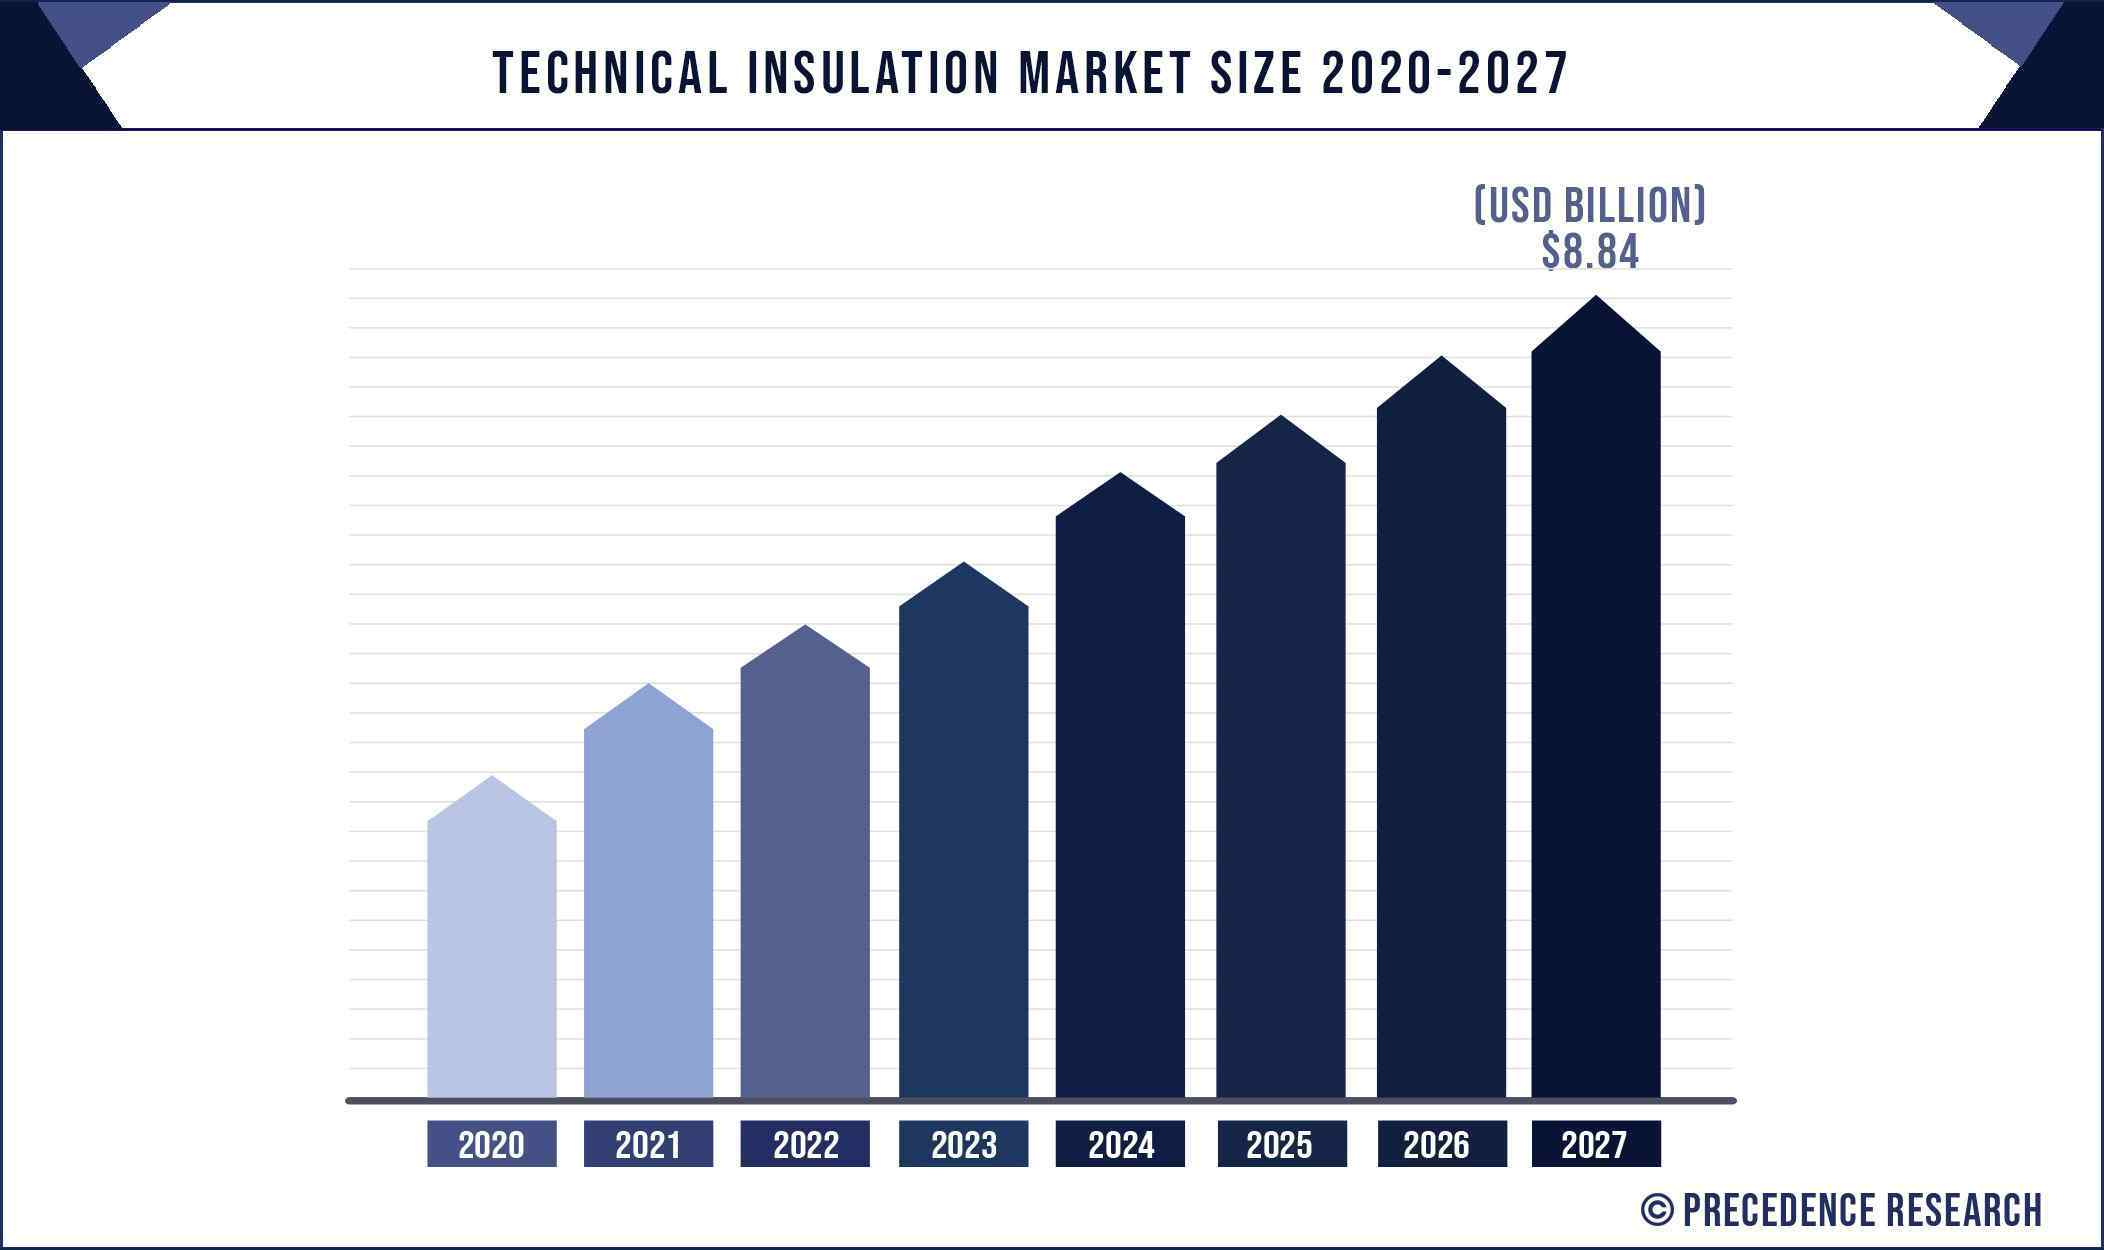 Technical Insulation Market Size 2020 to 2027